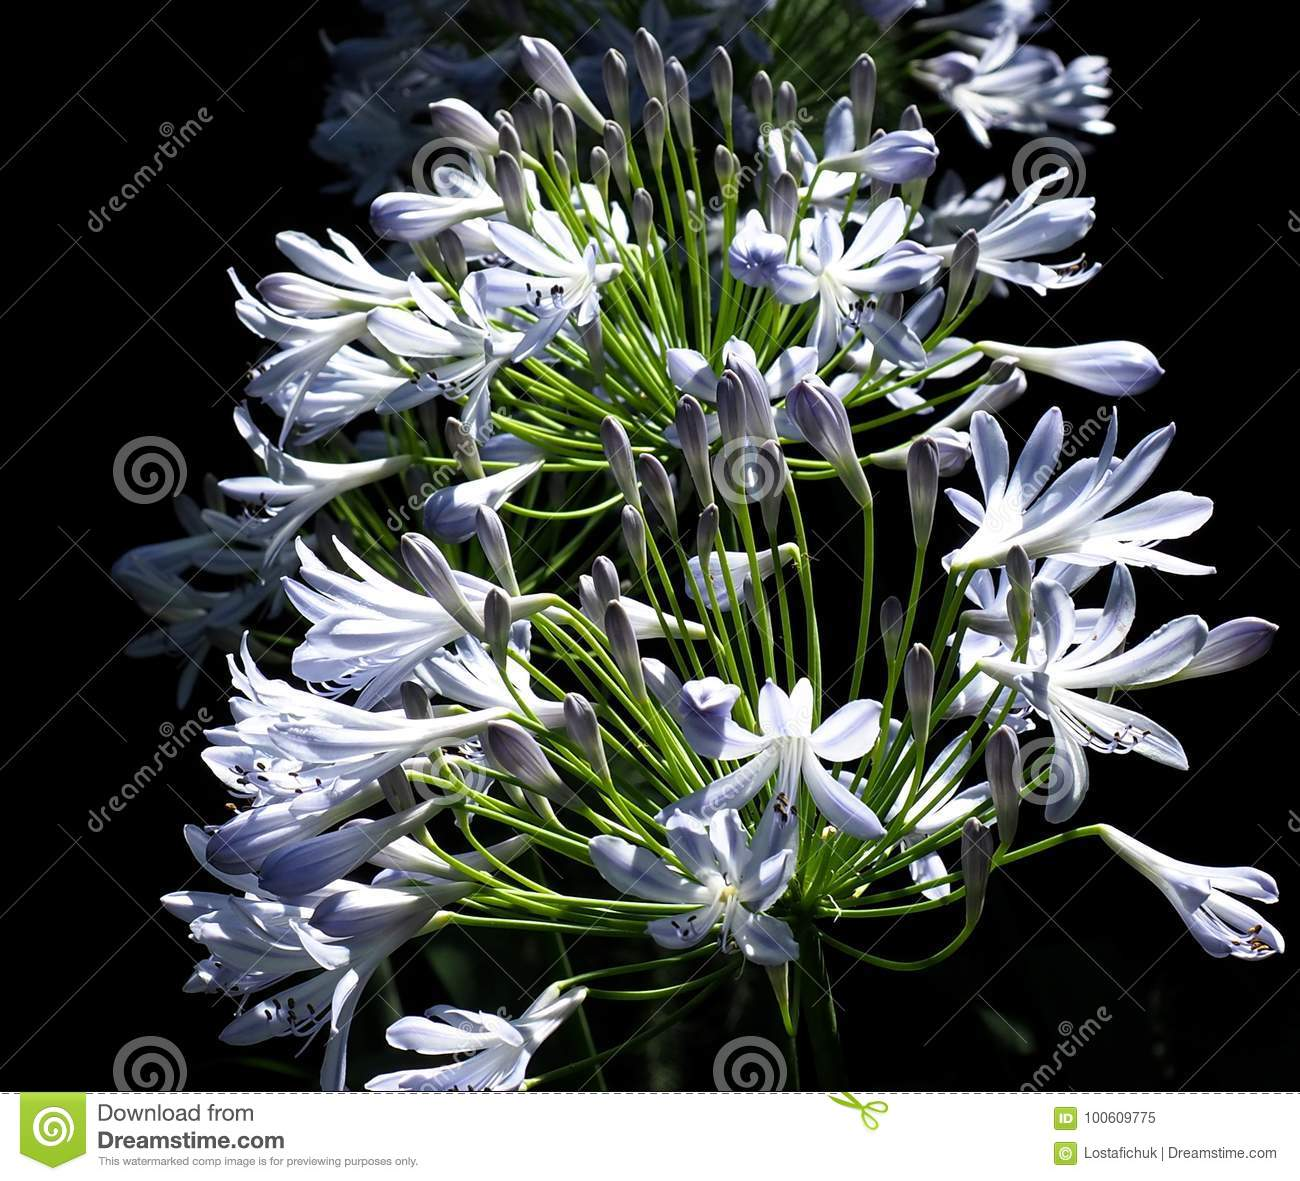 Agapanthus or lily of the nile stock image image of botany lily download agapanthus or lily of the nile stock image image of botany lily izmirmasajfo